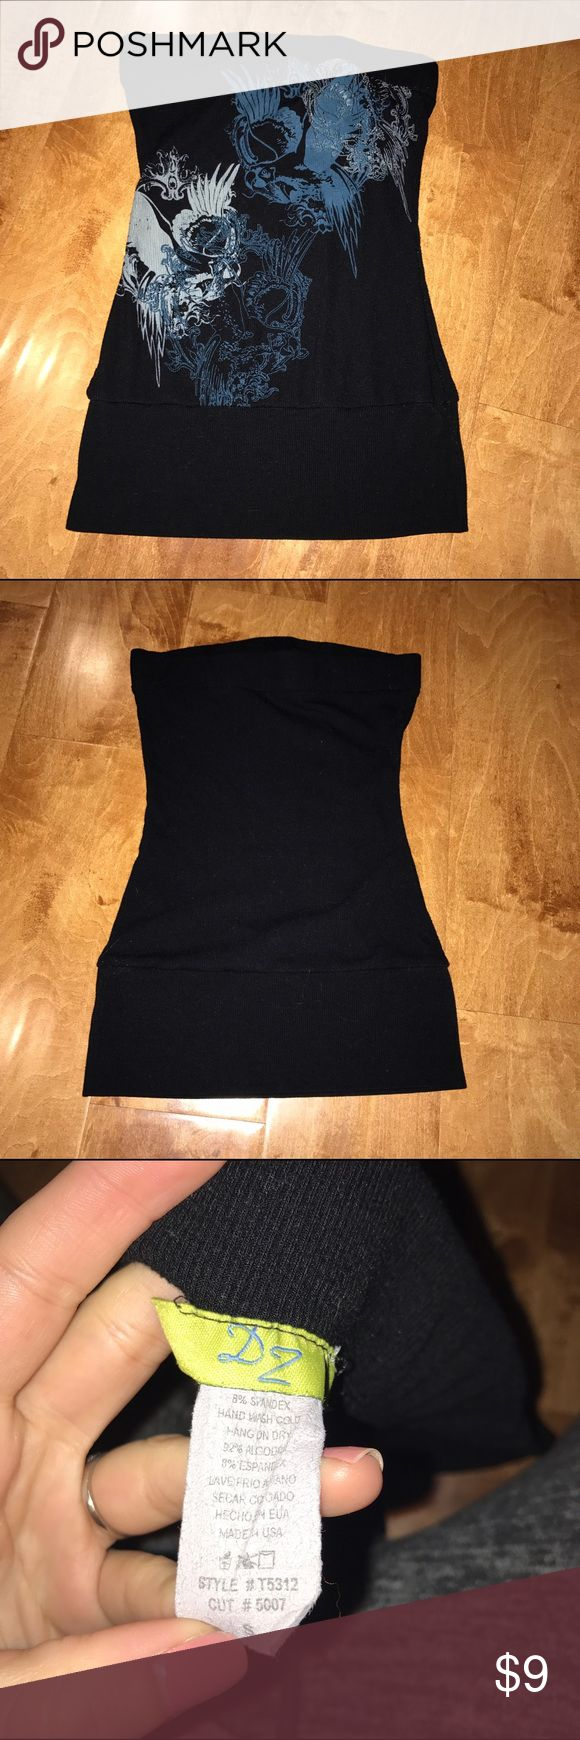 Black tube top Black tube top. Size S. 92% cotton. 8% spandex. Tops